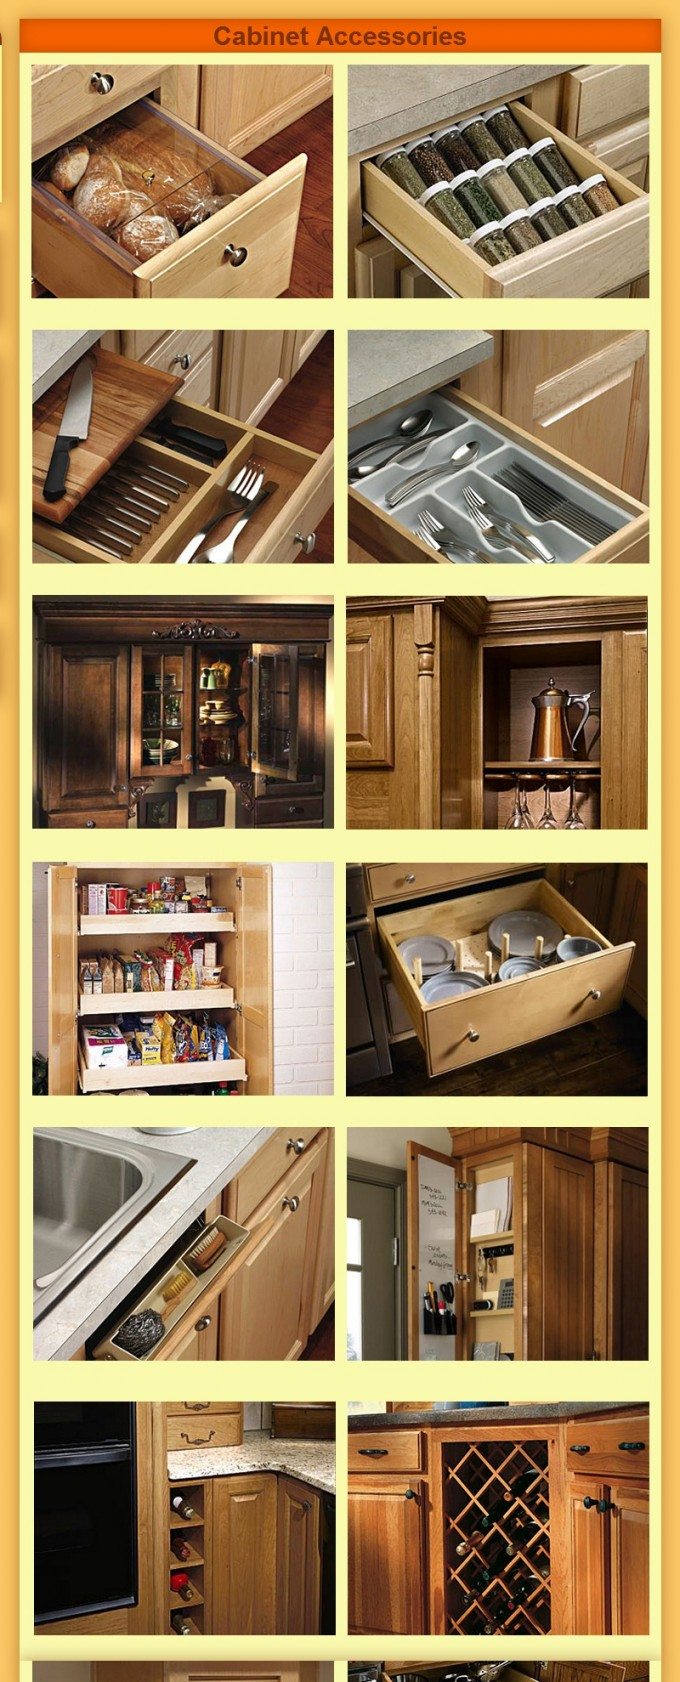 Aristokraft Cabinets Accessories